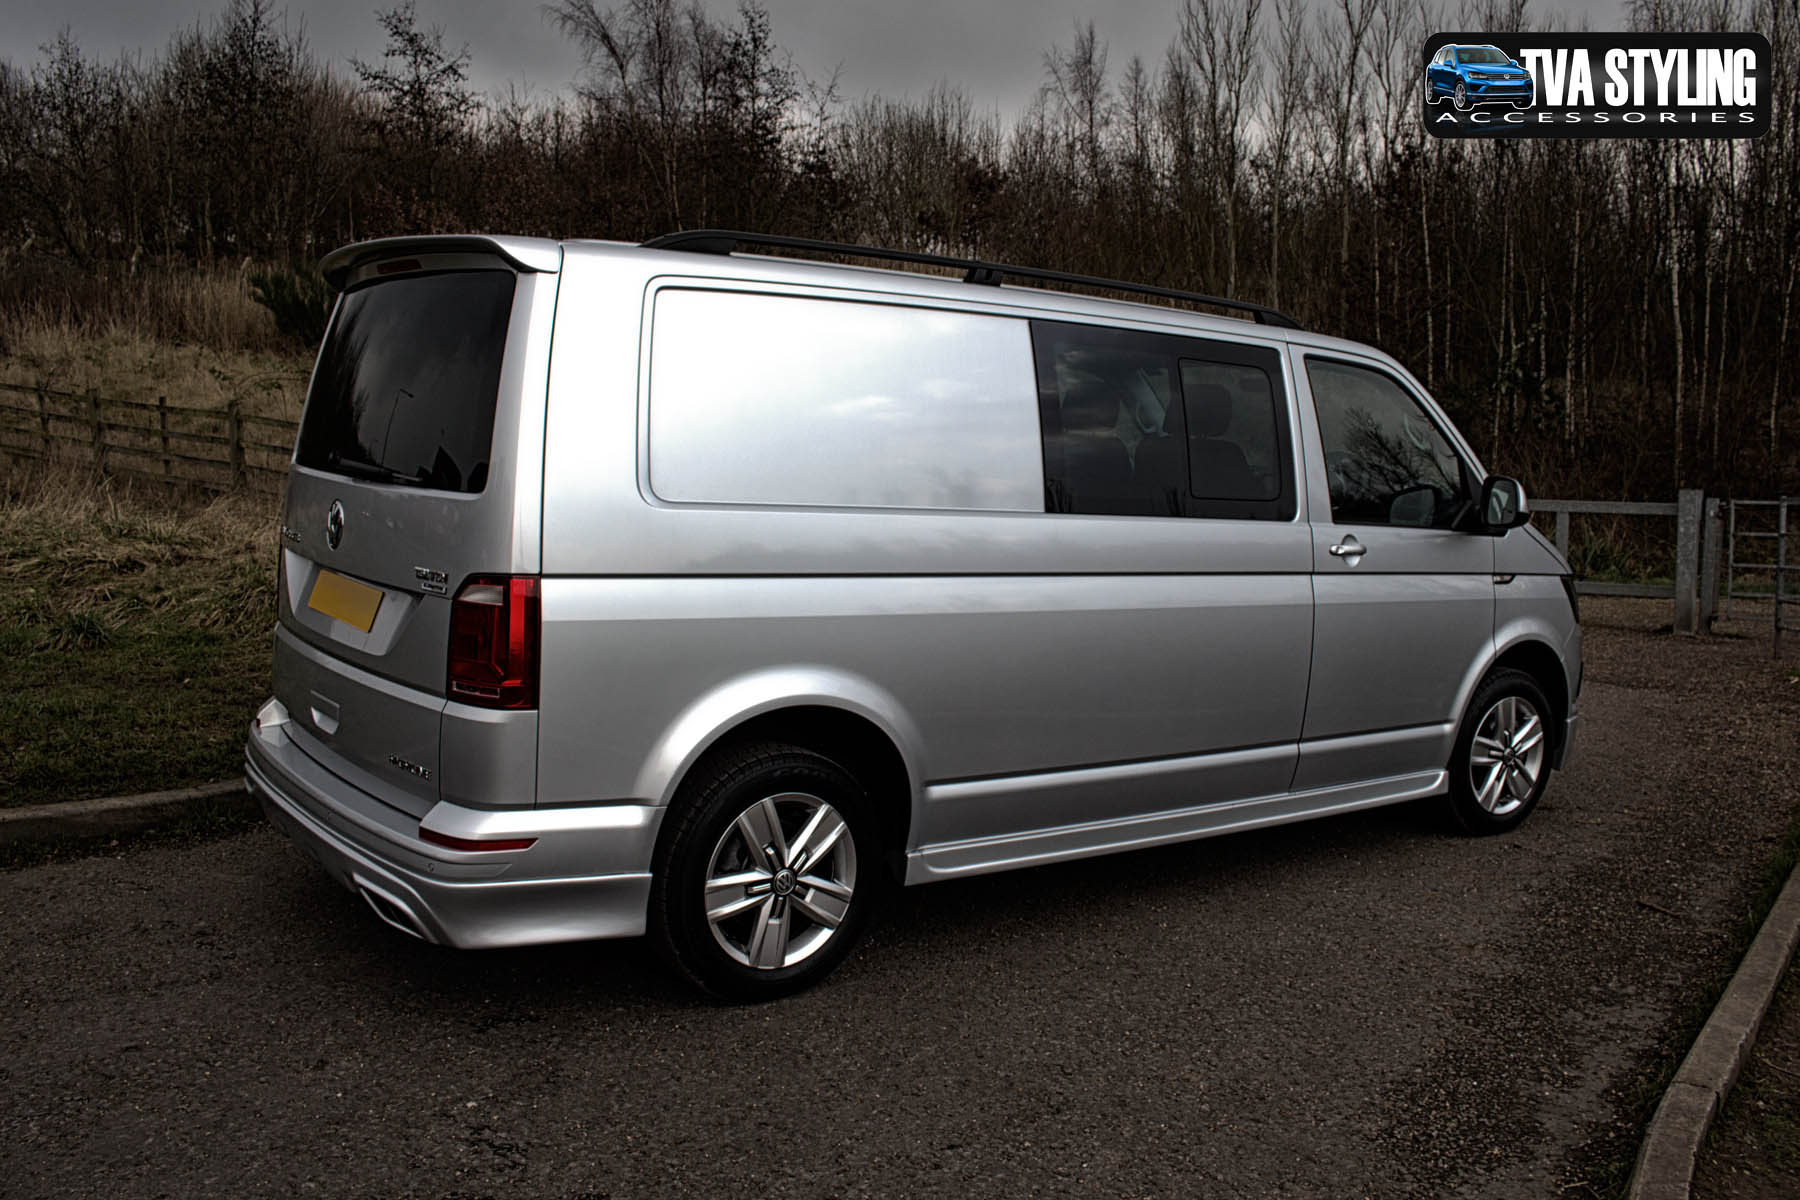 vw t6 bodykit transporter body styling tva styling. Black Bedroom Furniture Sets. Home Design Ideas